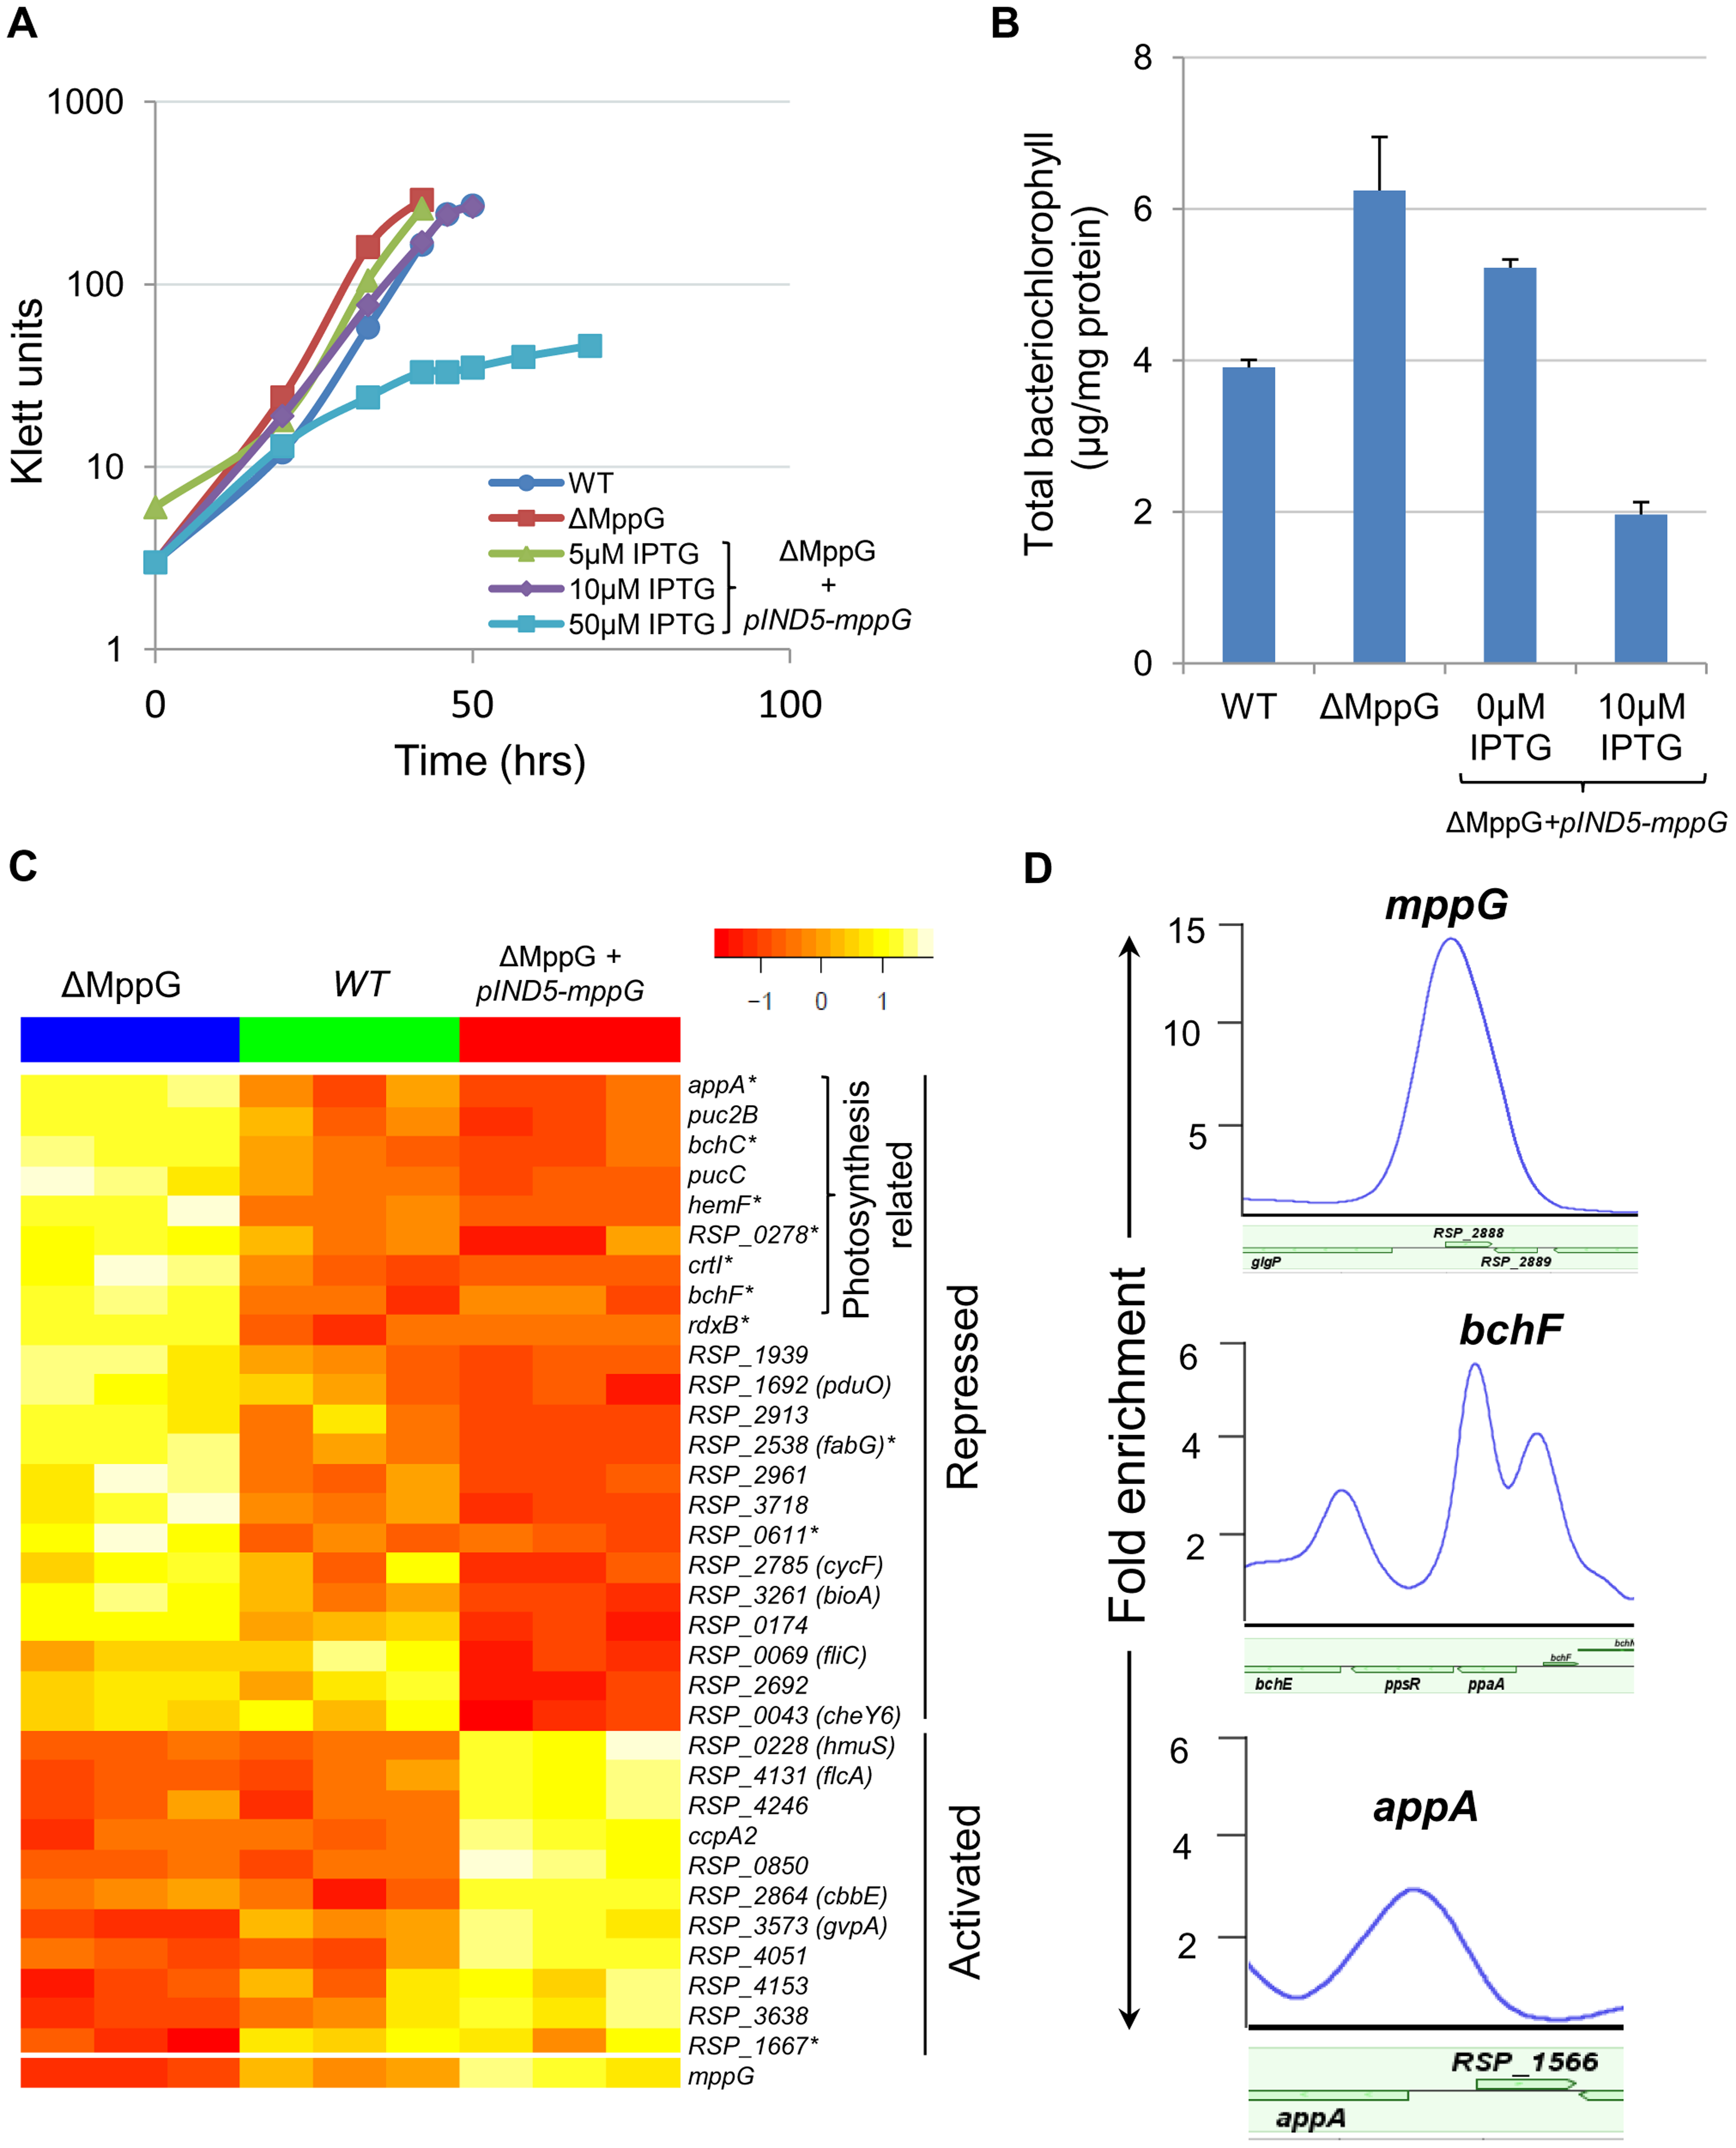 Physiological and genomic analysis of MppG regulation.